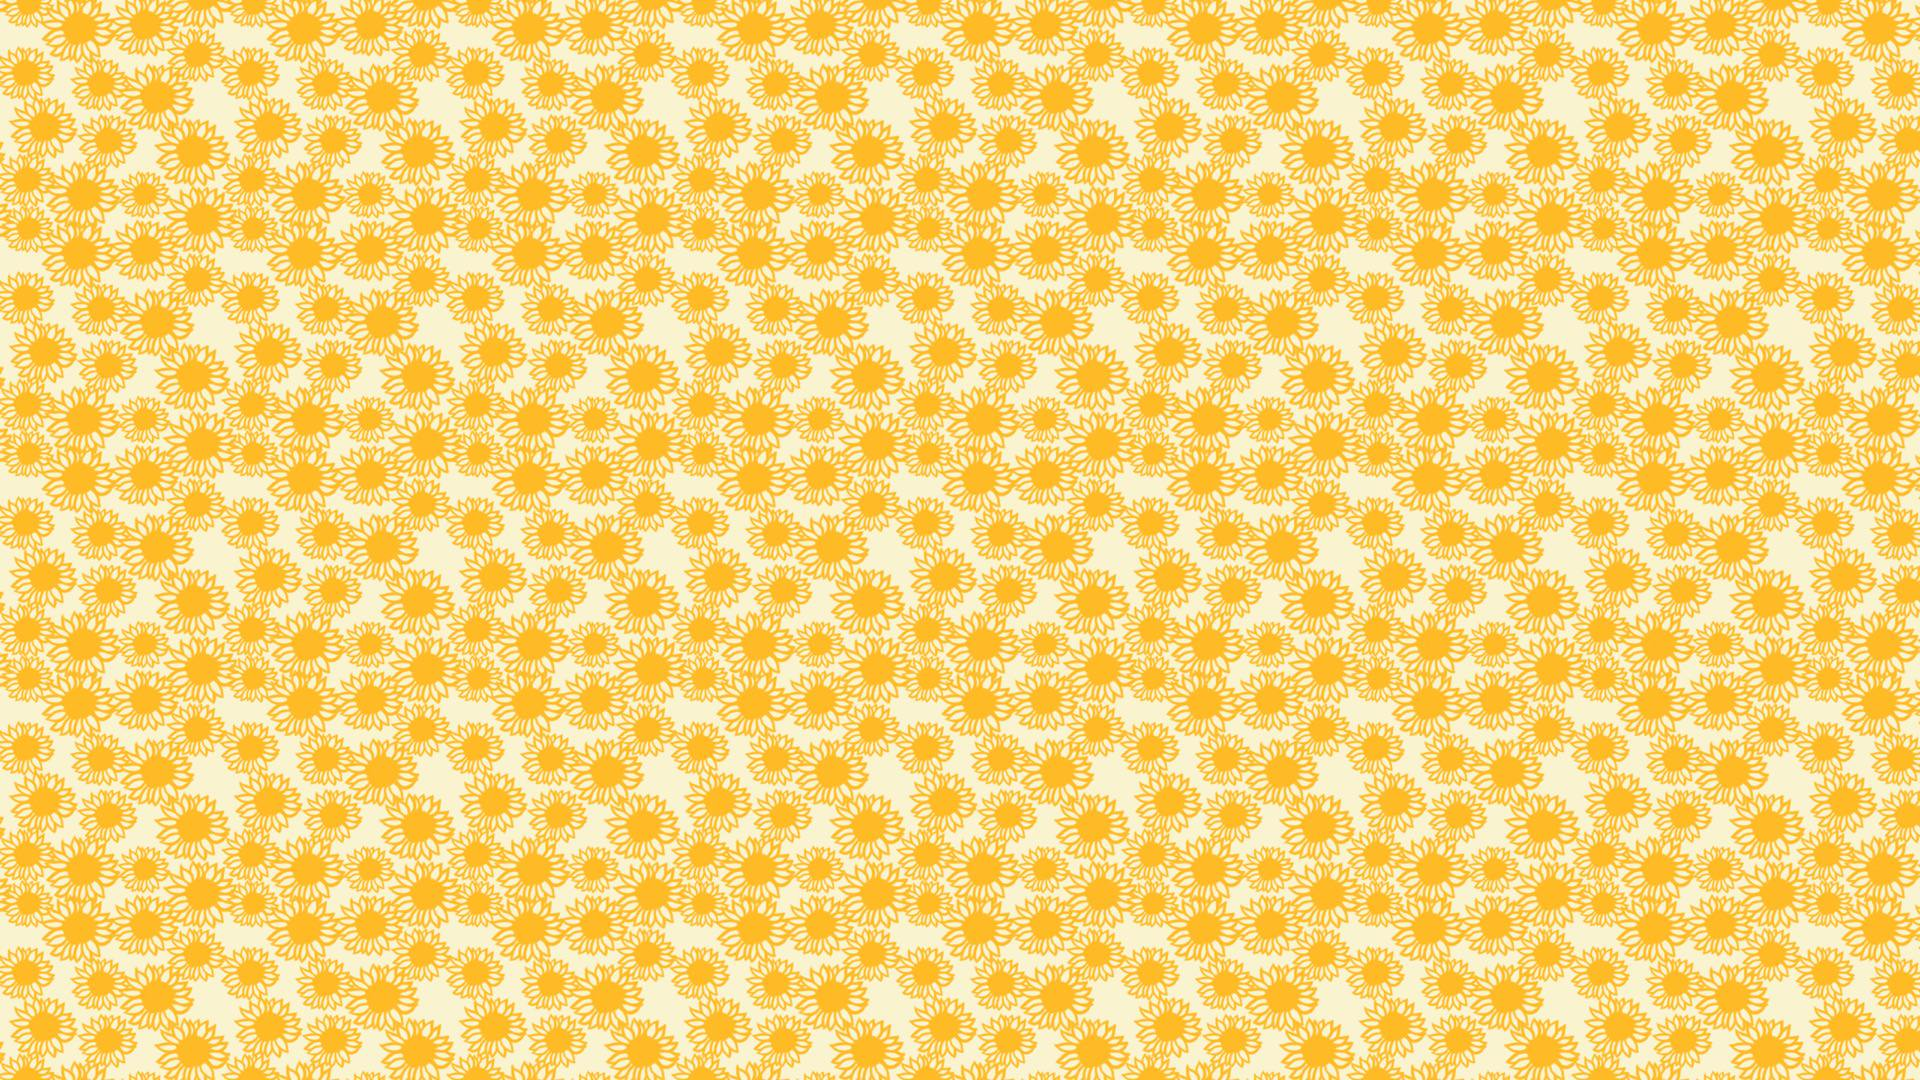 Pattern Sunflower Yellow Women Friendly Wallpaper Sc Desktop